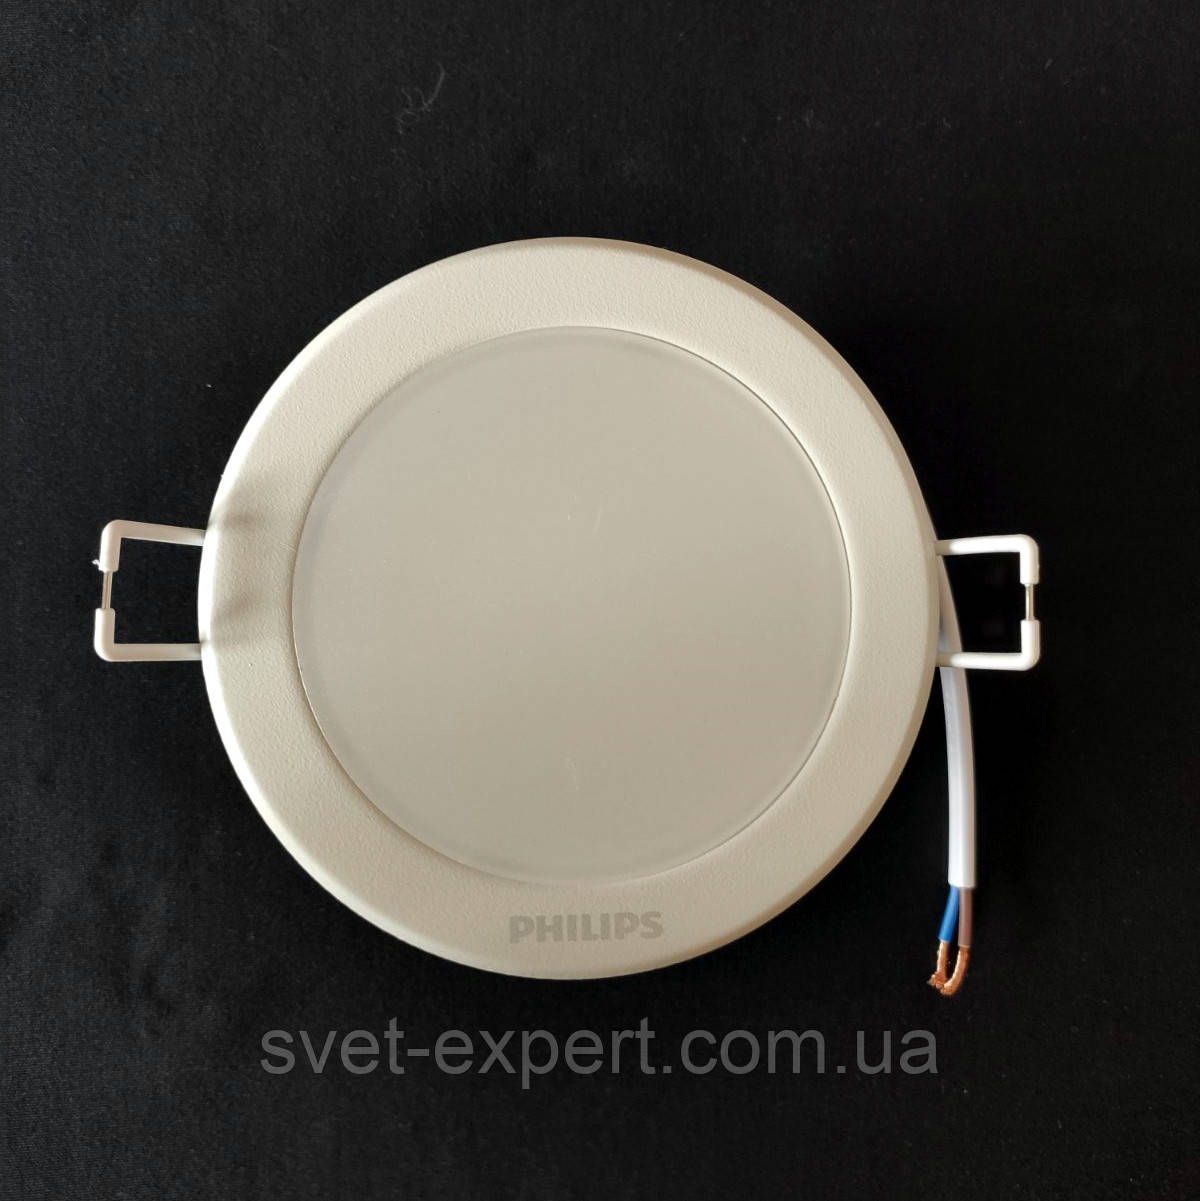 DN027B G2 LED6/NW 7W 220-240V D90 круг светильник Philips